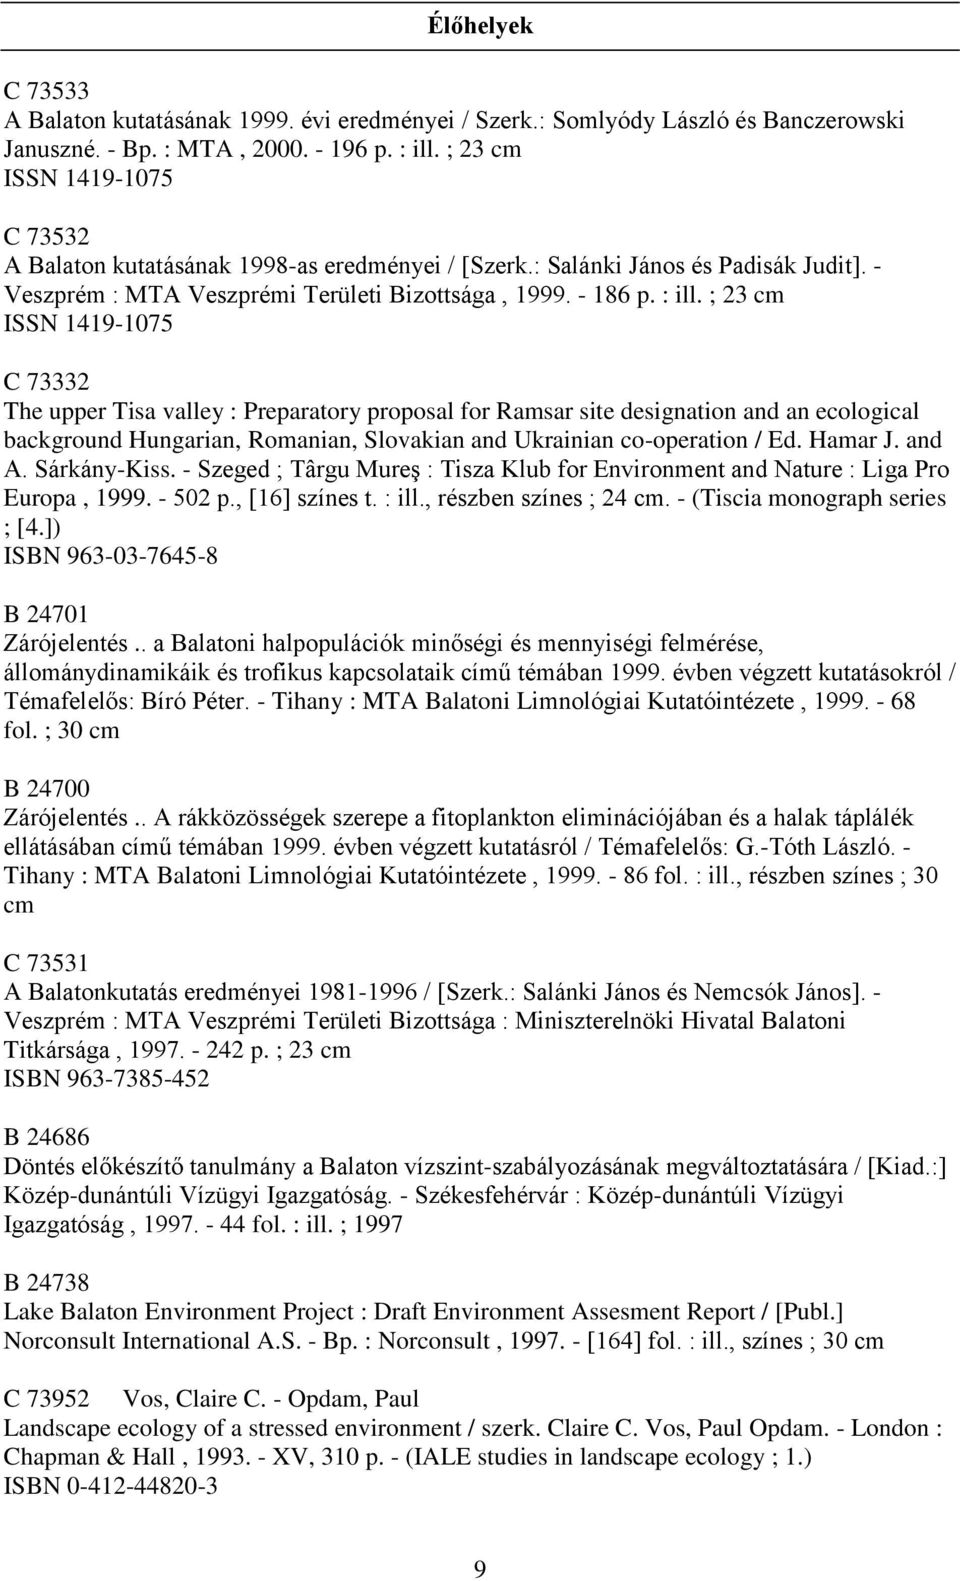 ; 23 cm ISSN 1419-1075 C 73332 The upper Tisa valley : Preparatory proposal for Ramsar site designation and an ecological background Hungarian, Romanian, Slovakian and Ukrainian co-operation / Ed.